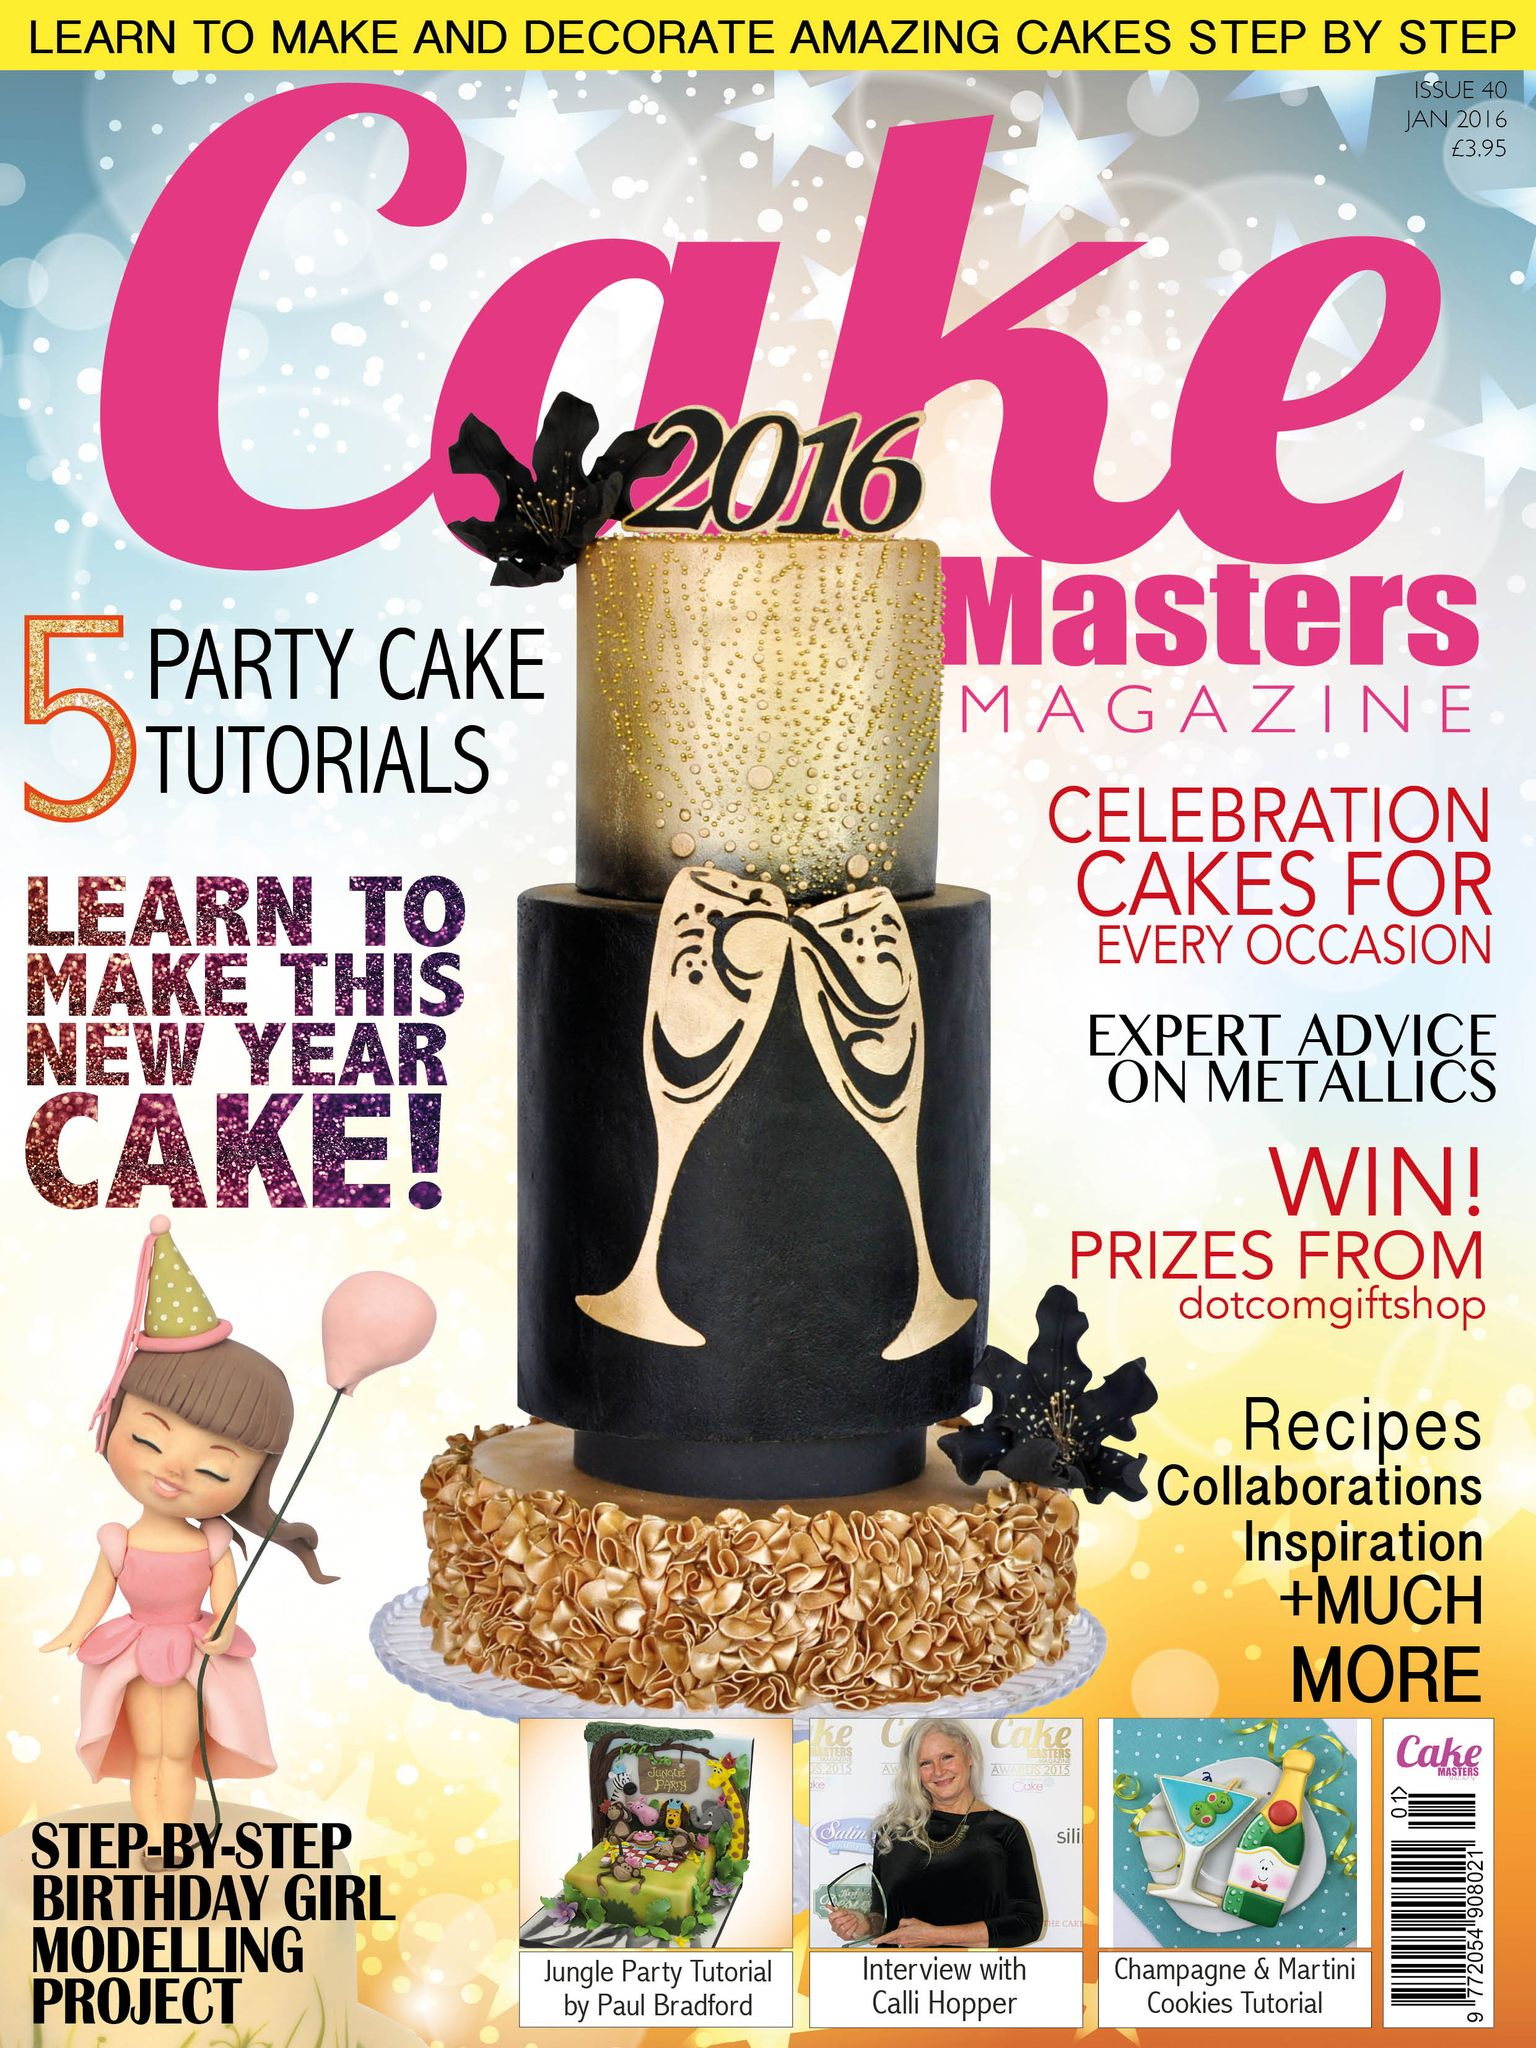 JAN 2016 cake decorating magazine cake masters